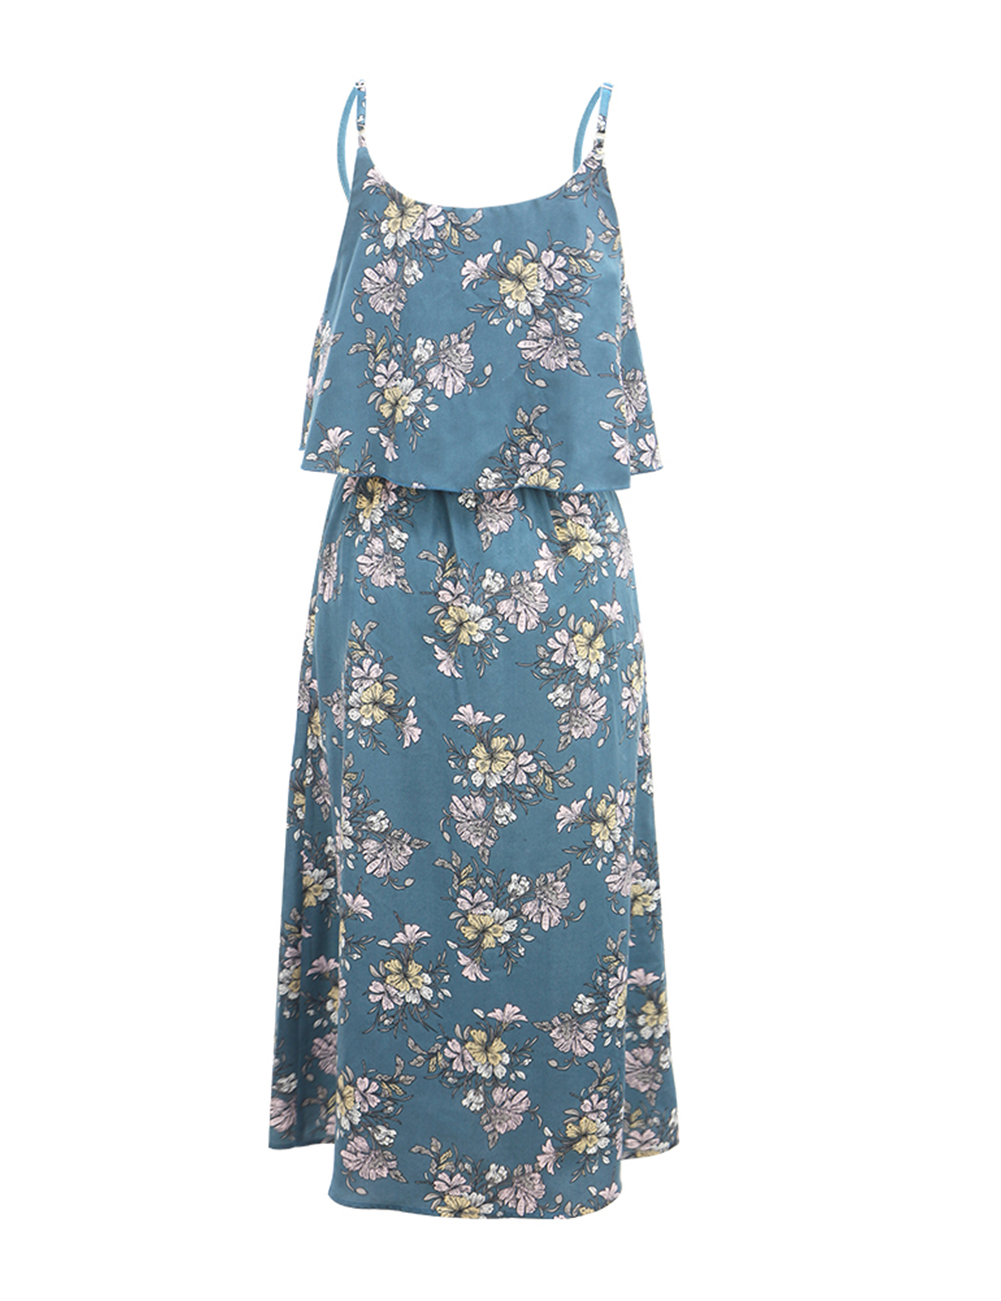 //cdn.affectcloud.com/feelingirldress/upload/imgs/2019-06-04/VZ190494-BU1/VZ190494-BU1-8.jpg